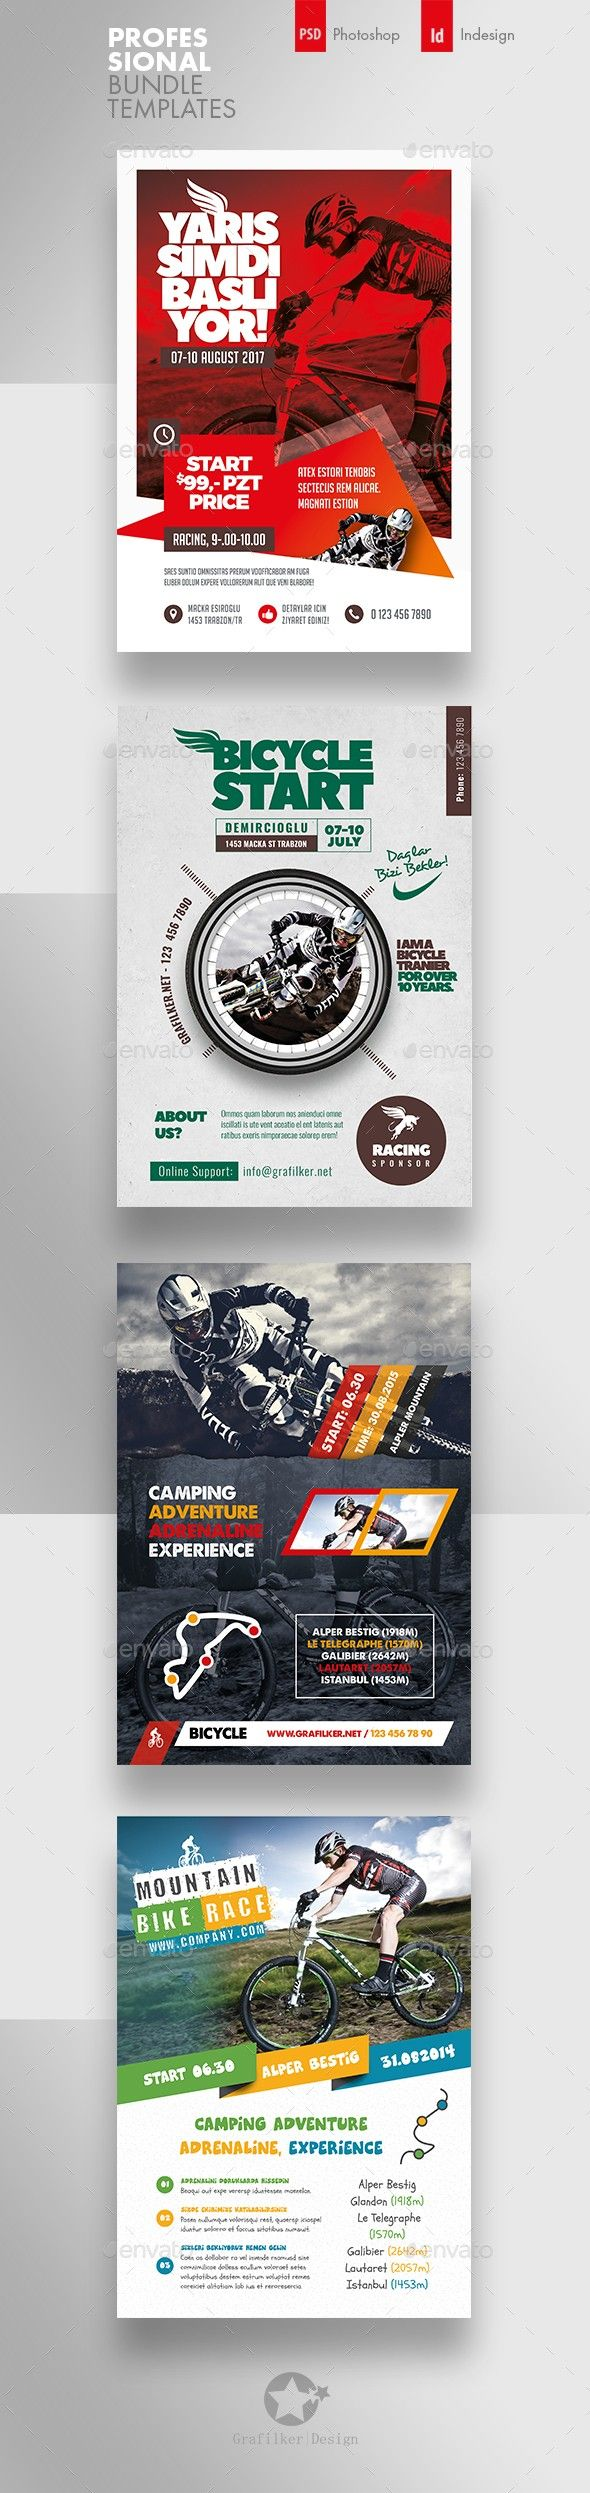 Adrenaline Adventure Atv Bicycle Bike Biking Camp Camping Cycle Cyclist Excitement Grafilker Holiday Flyer Business Flyer Templates Flyer Template